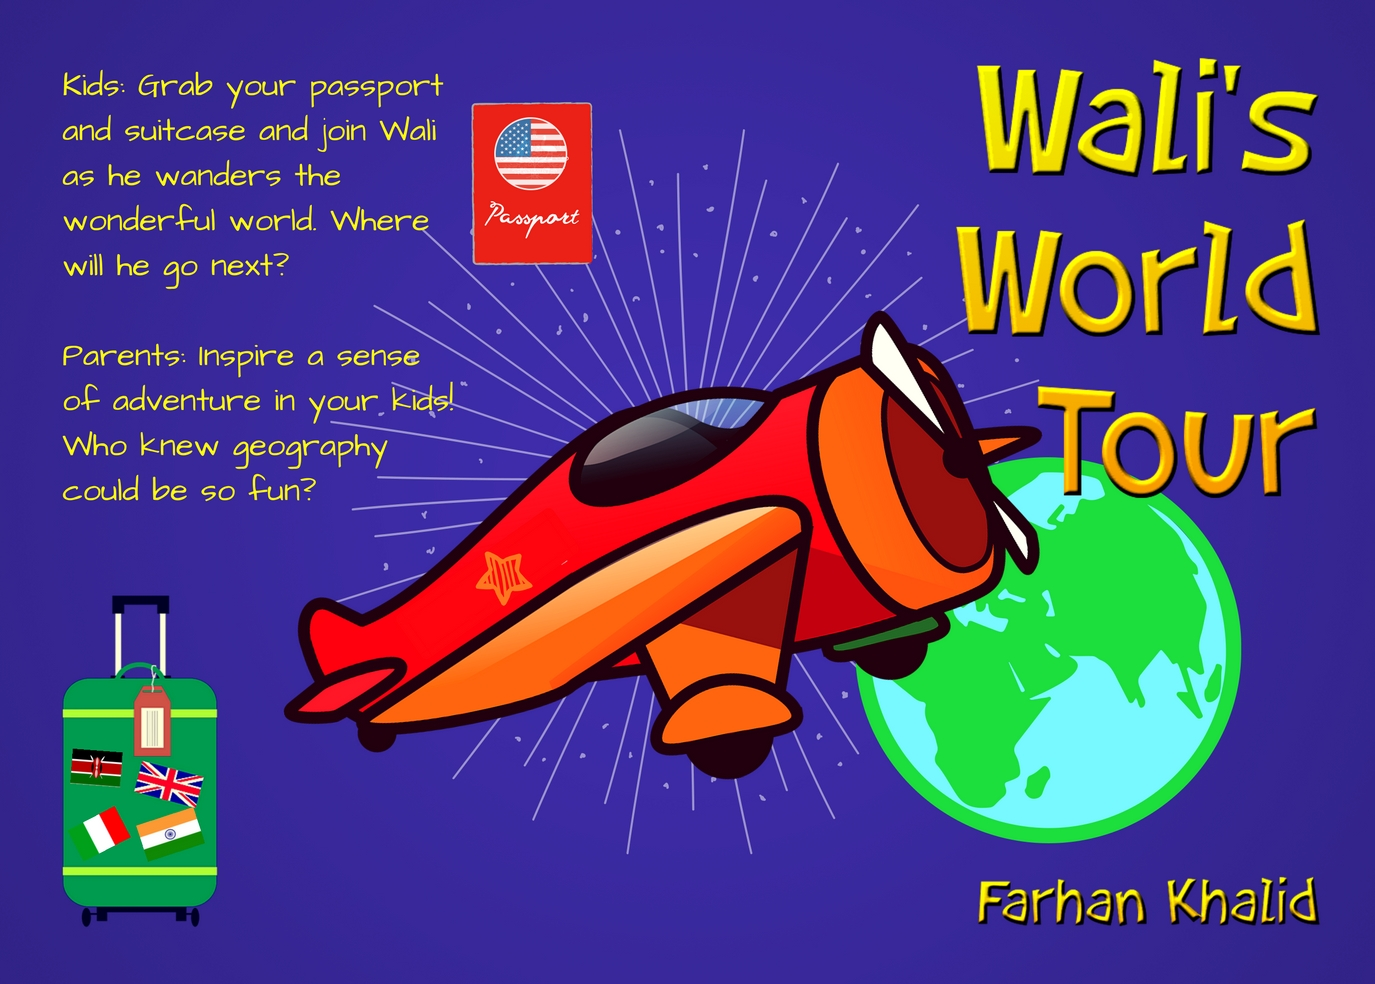 The Return of Farhan Khalid – Wali's World Tour